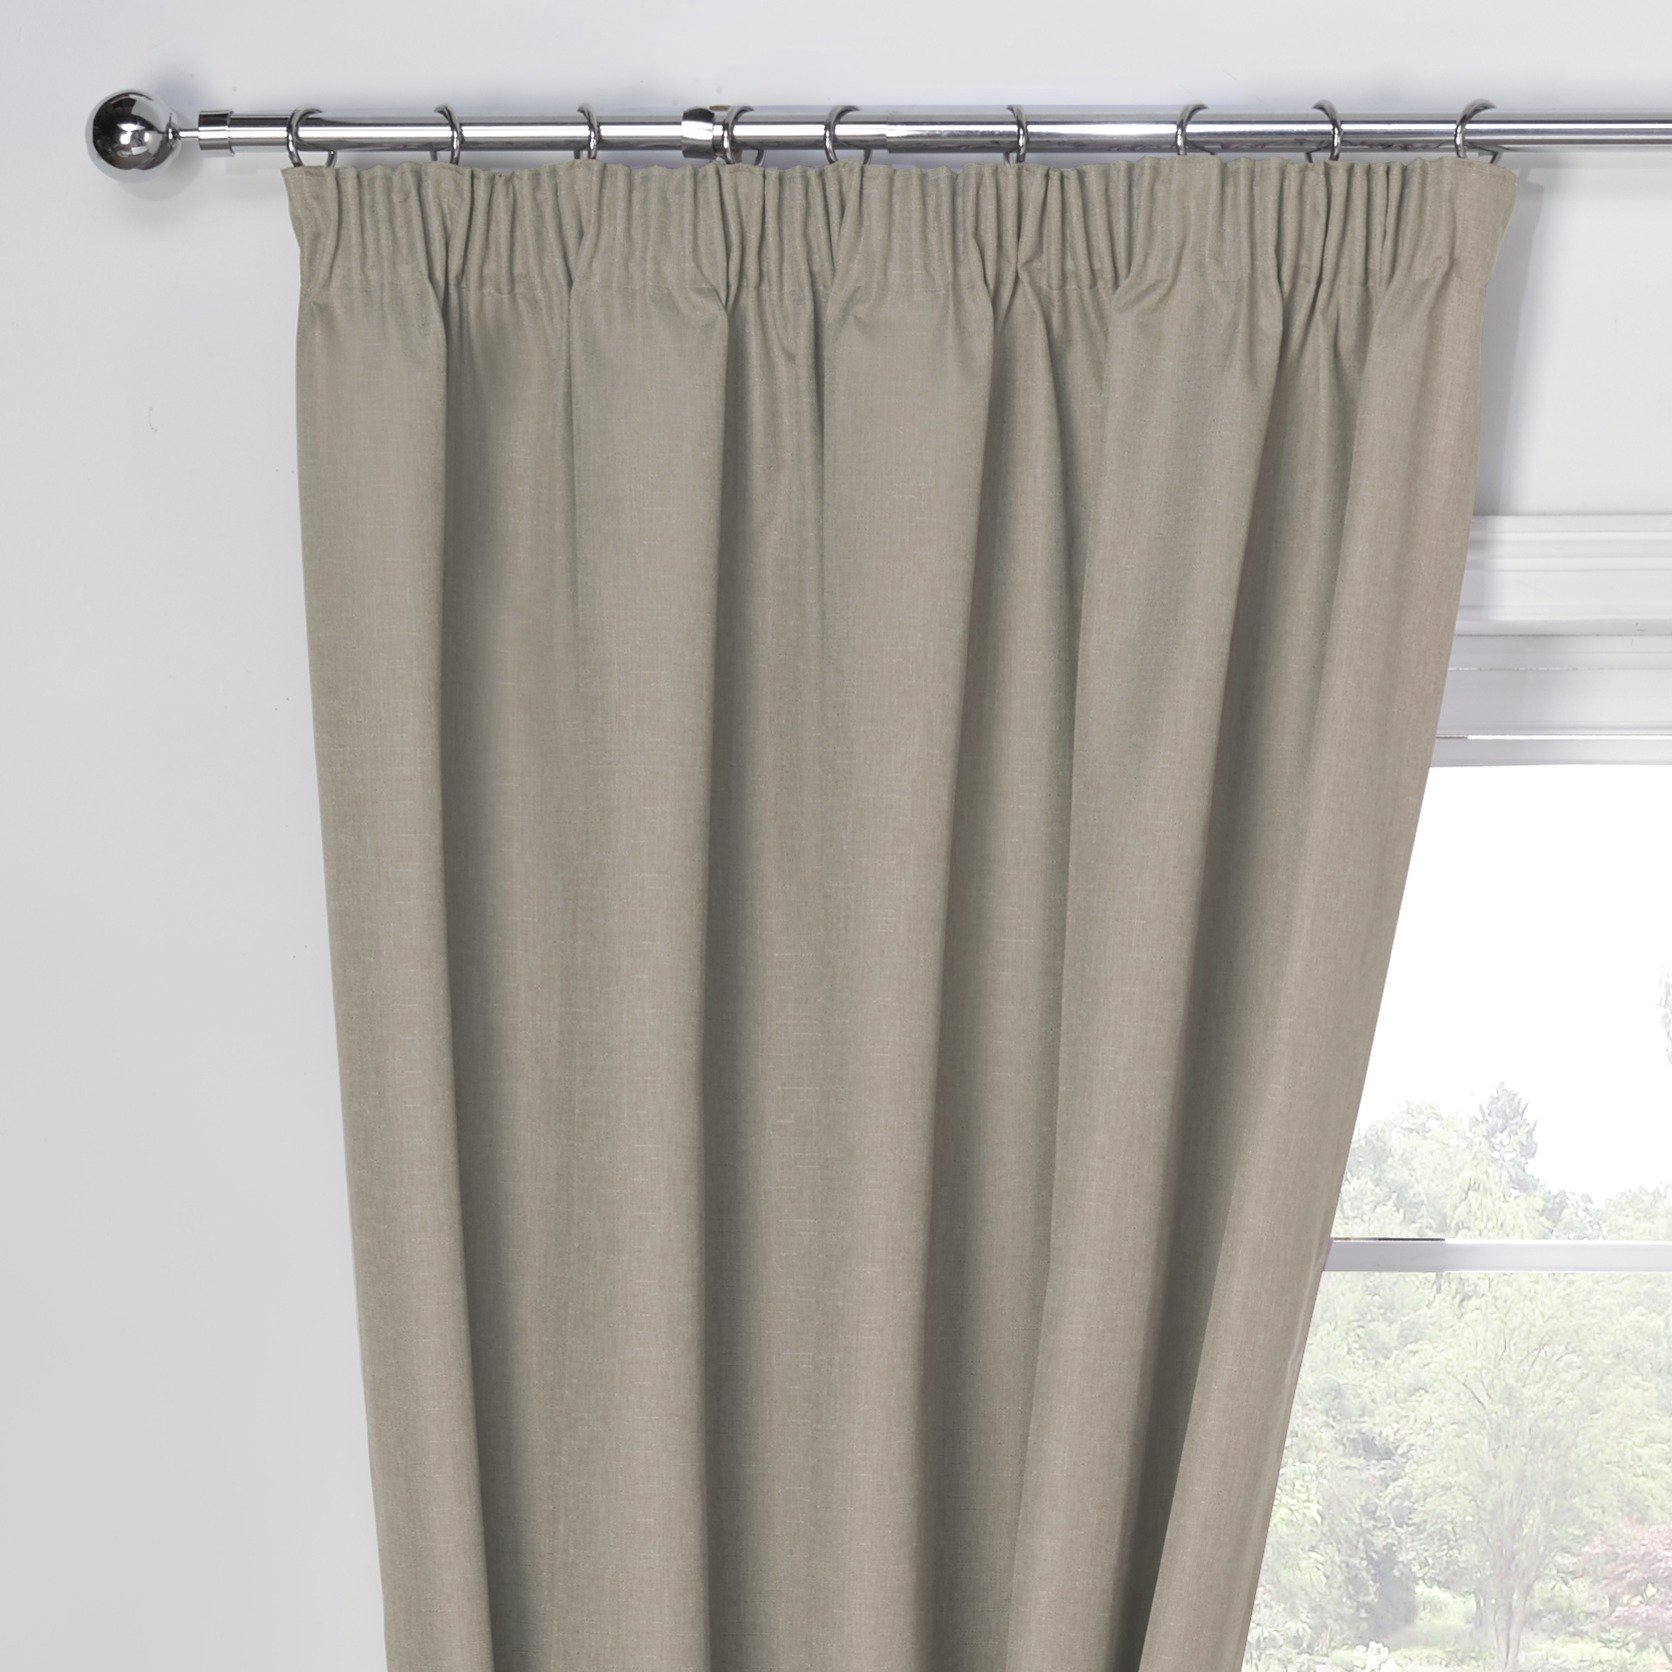 Julian Charles Luna Blackout Curtains